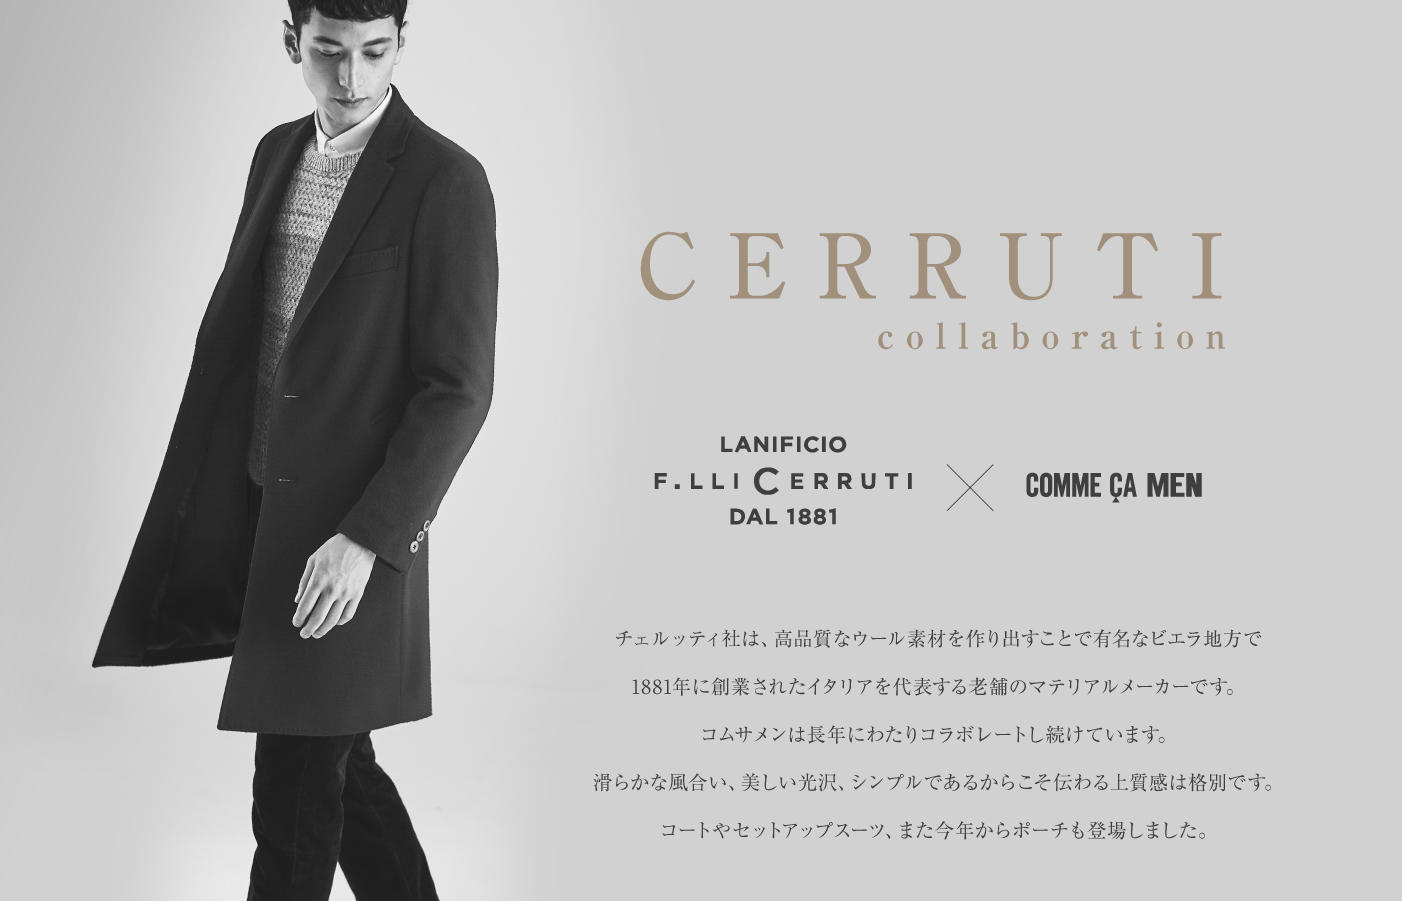 CERRUTI collaboration